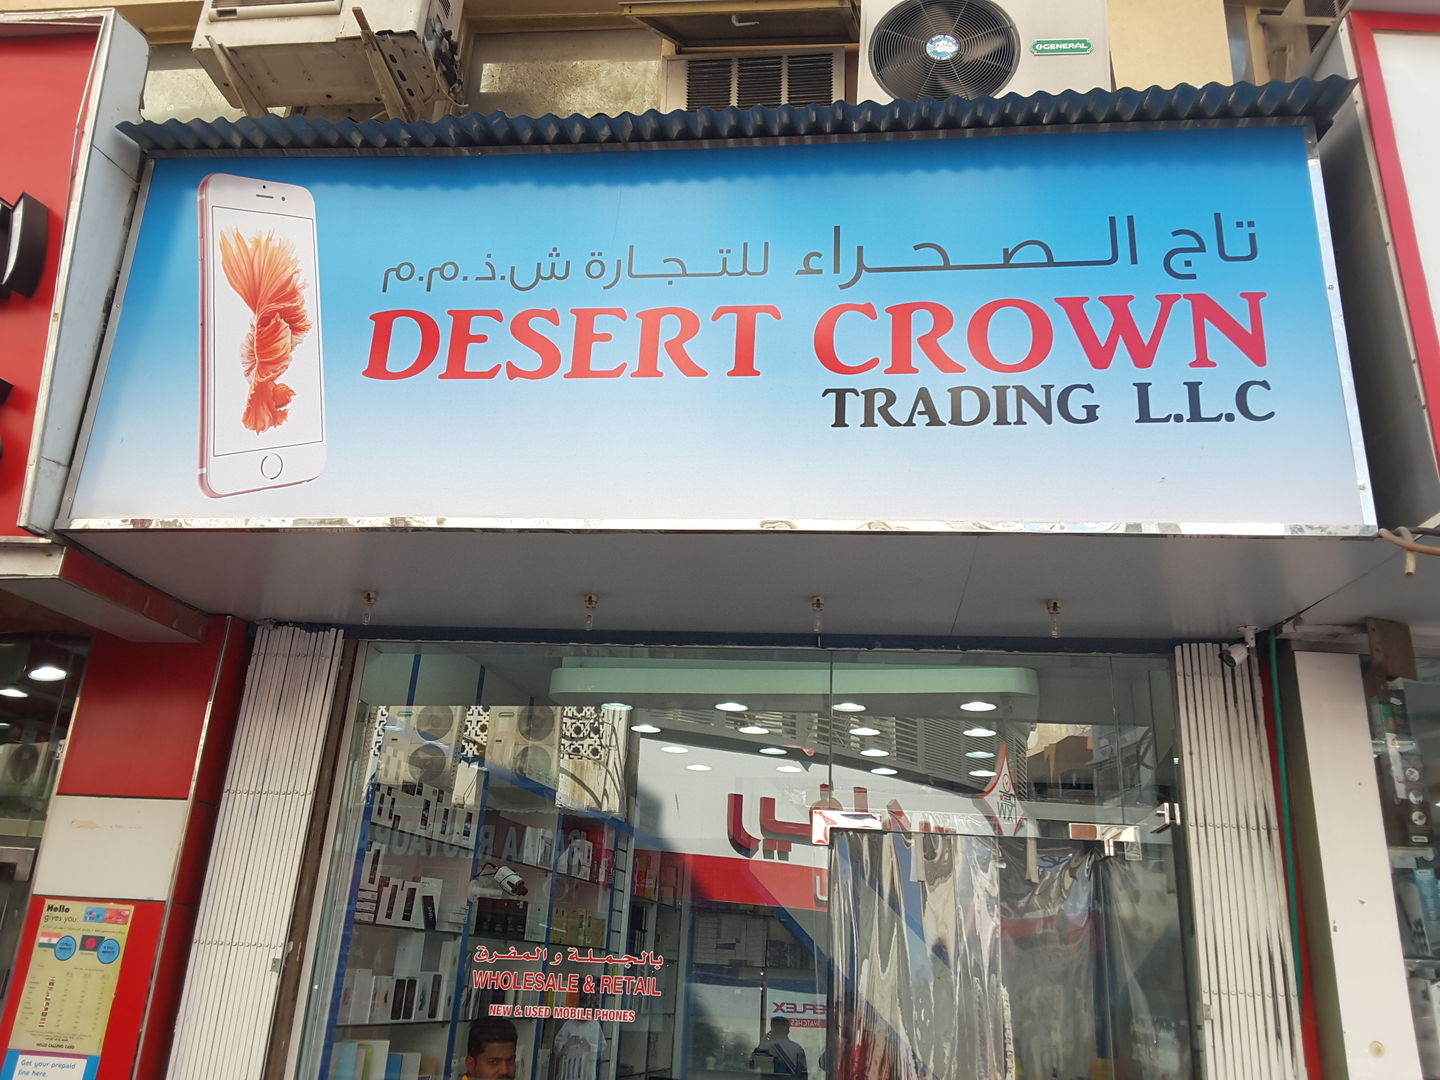 Walif-business-desert-crown-trading